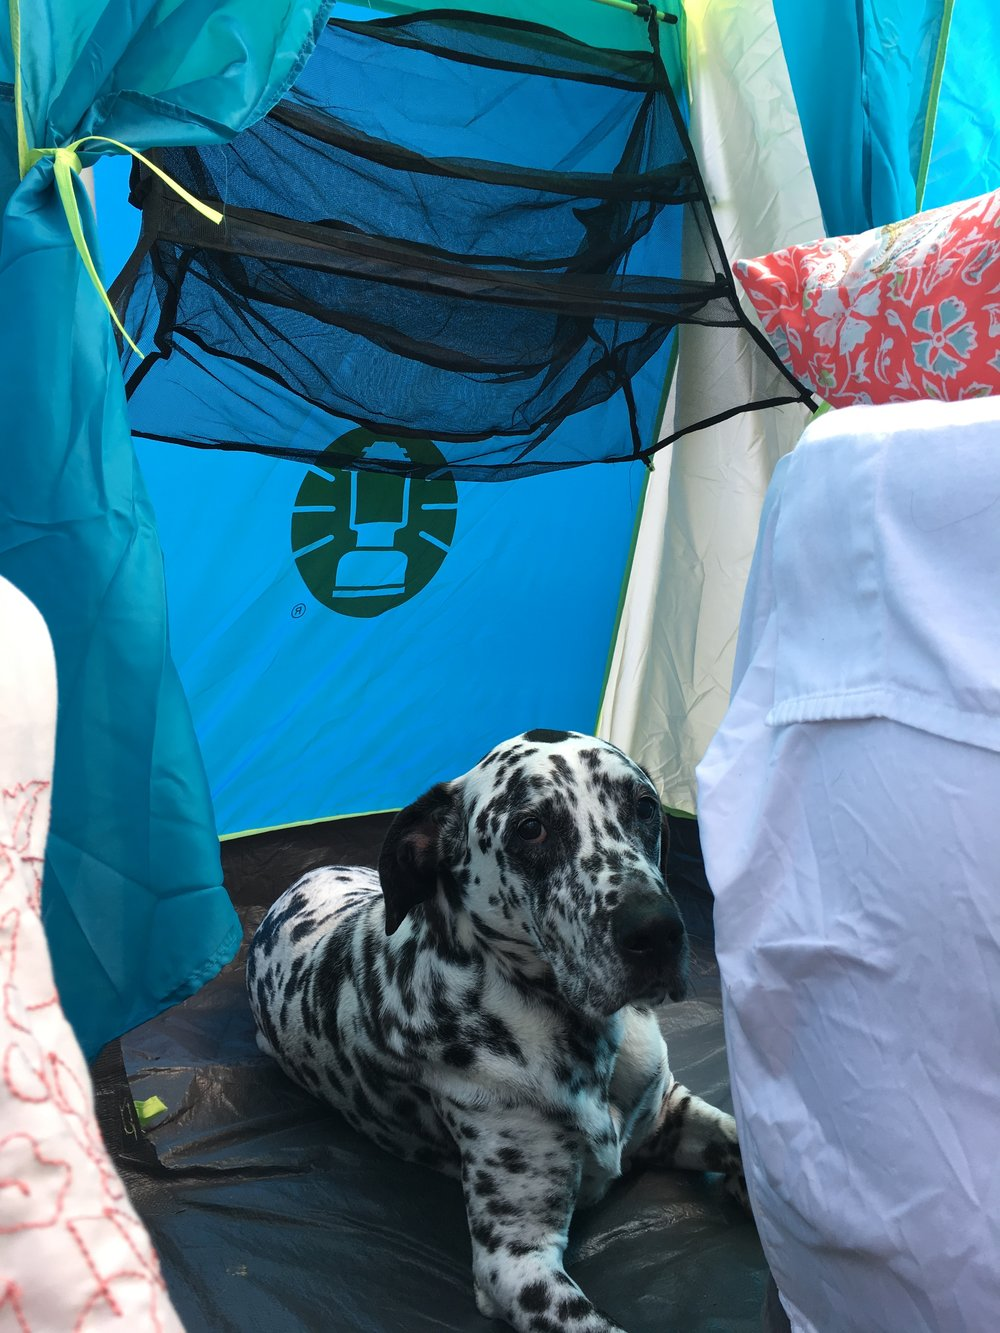 Our Double Tents come equipped with a spacious built-in closet, large enough to comfortably sleep a Large to Extra Large Furry Friend. Hanging Shelves allow for additional storage and organization.